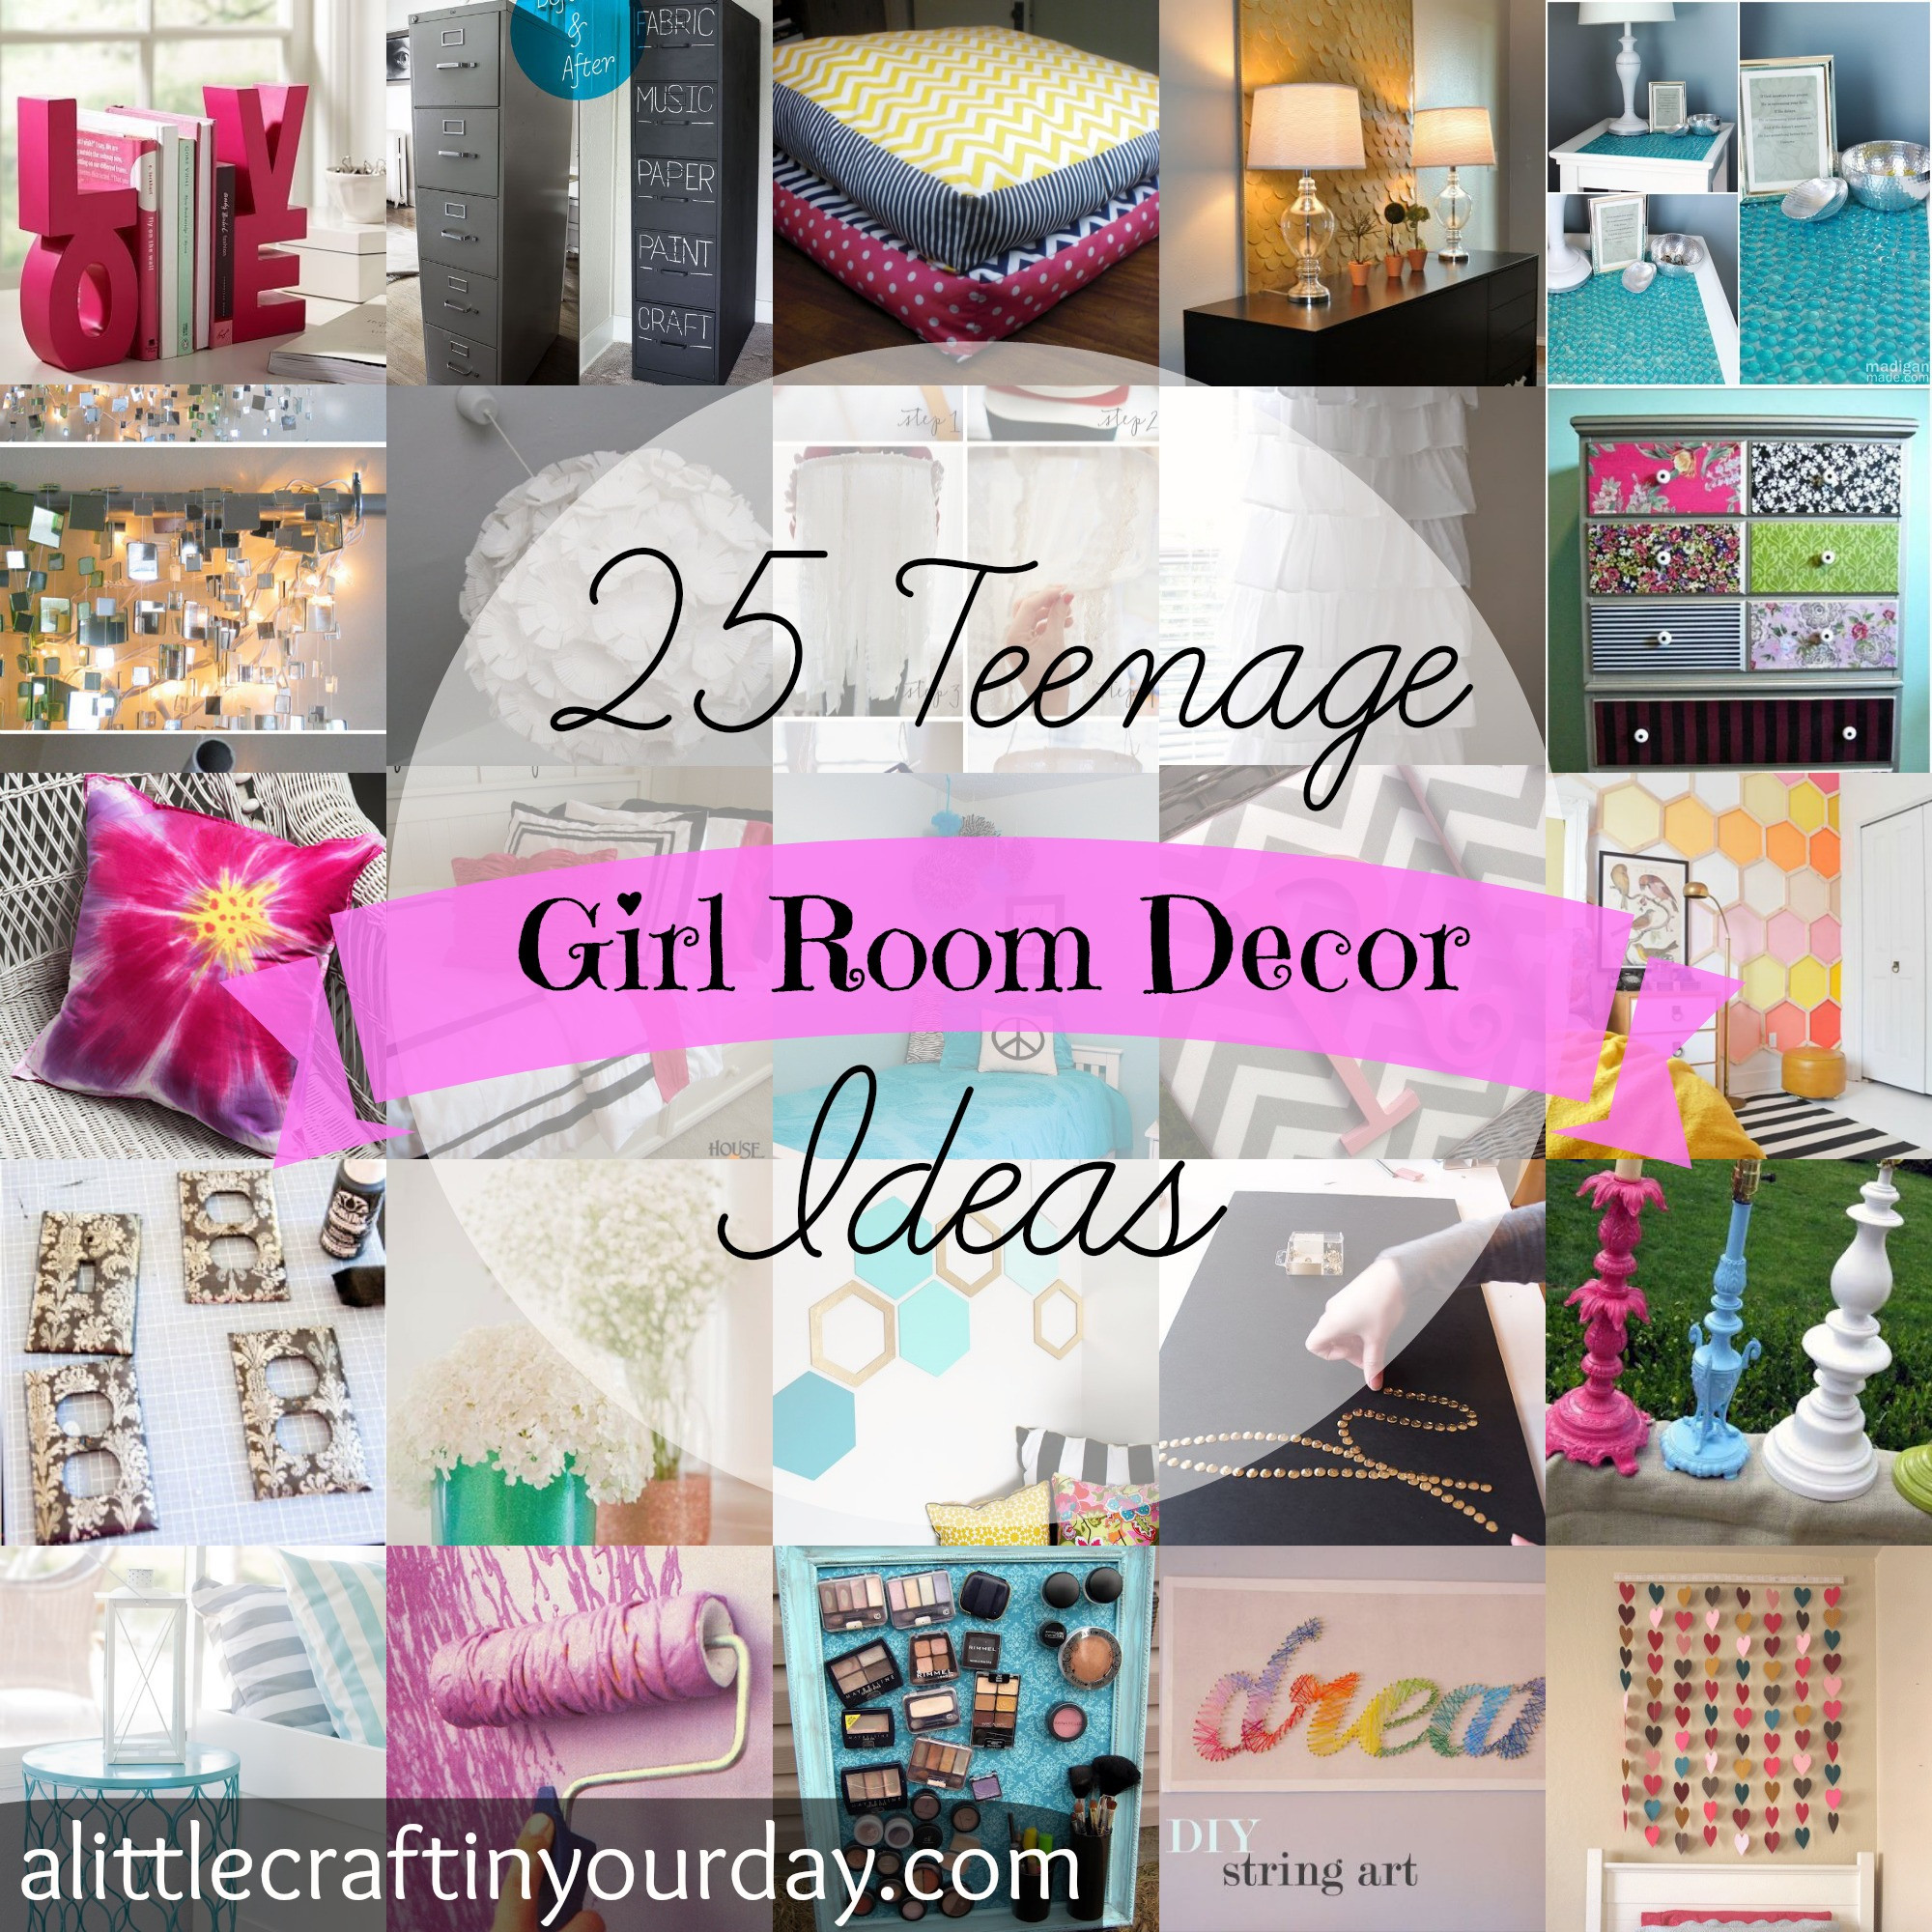 Best ideas about DIY Room Decoration For Girls . Save or Pin 12 DIY Spring Room Decor Ideas – Craft Teen Now.